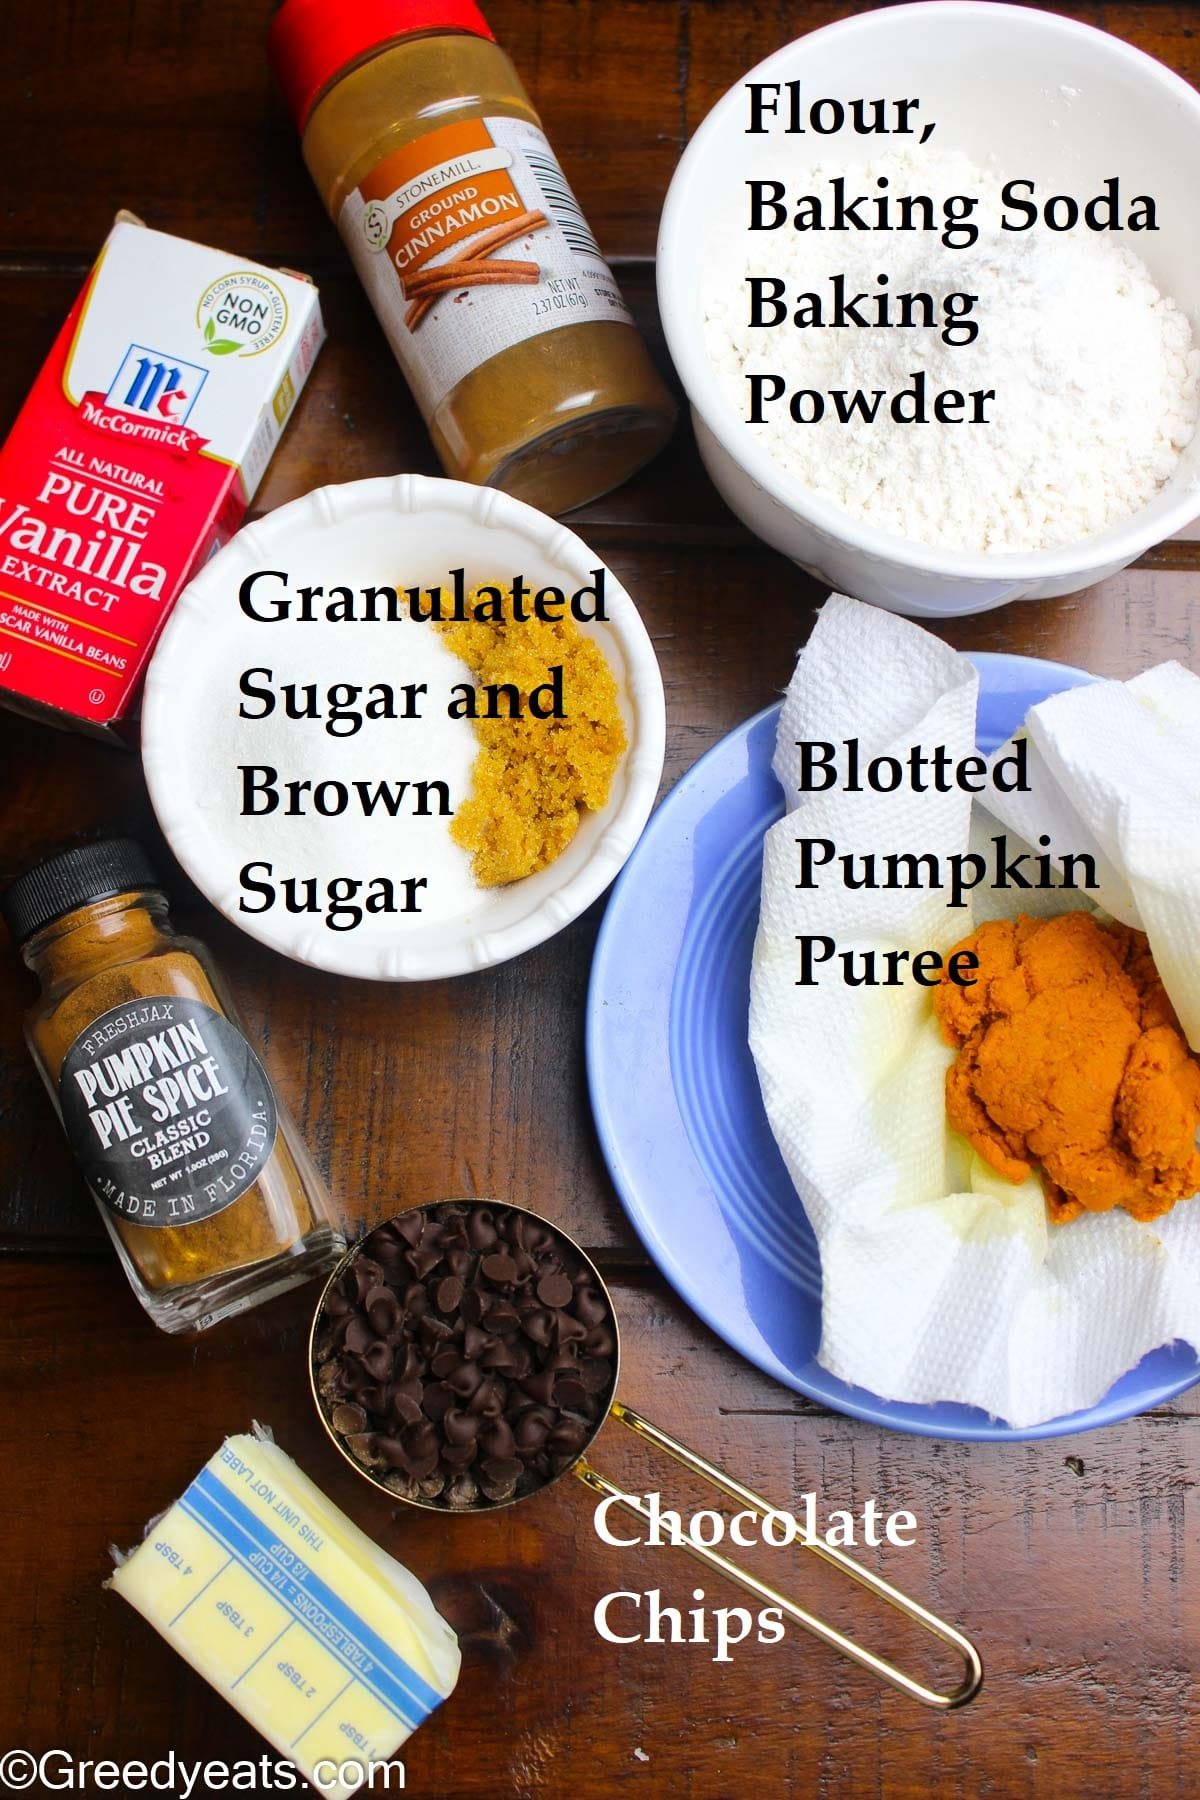 Ingredients like blotted pumpkin puree, spices, flour, sugar and butter for Pumpkin Cookies.